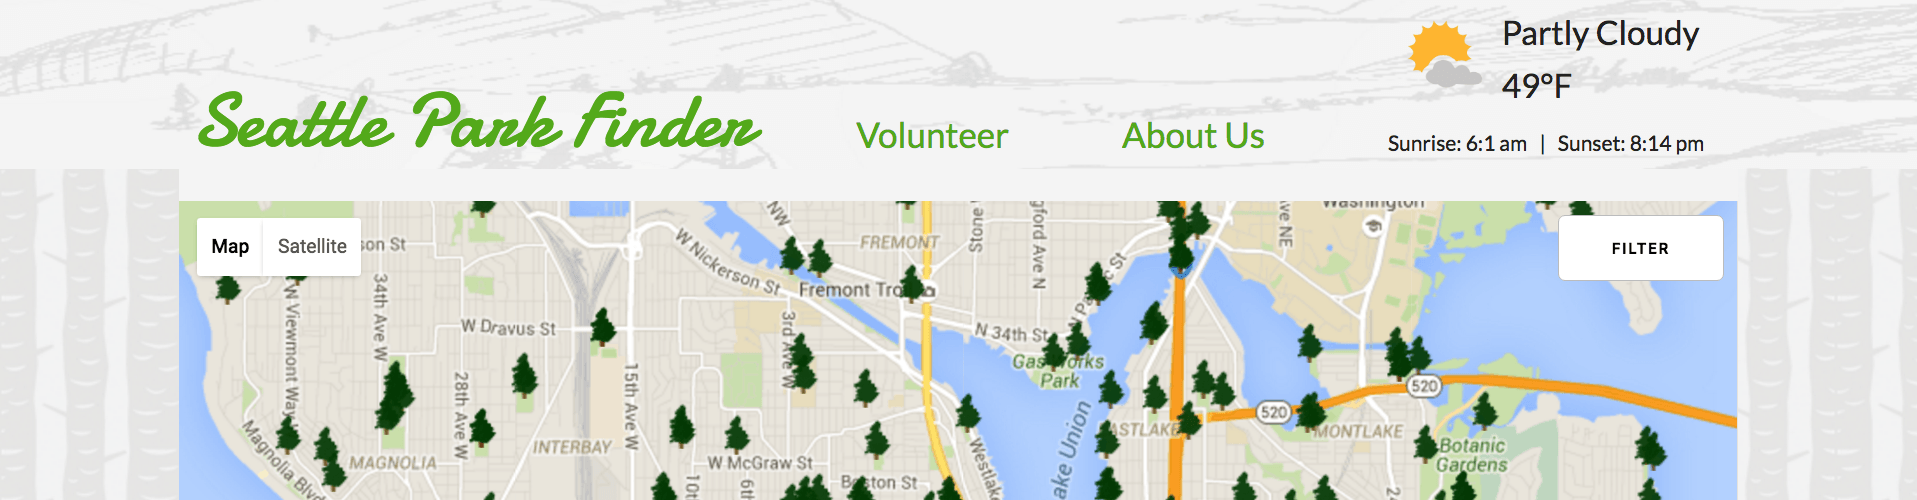 Seattle park finder